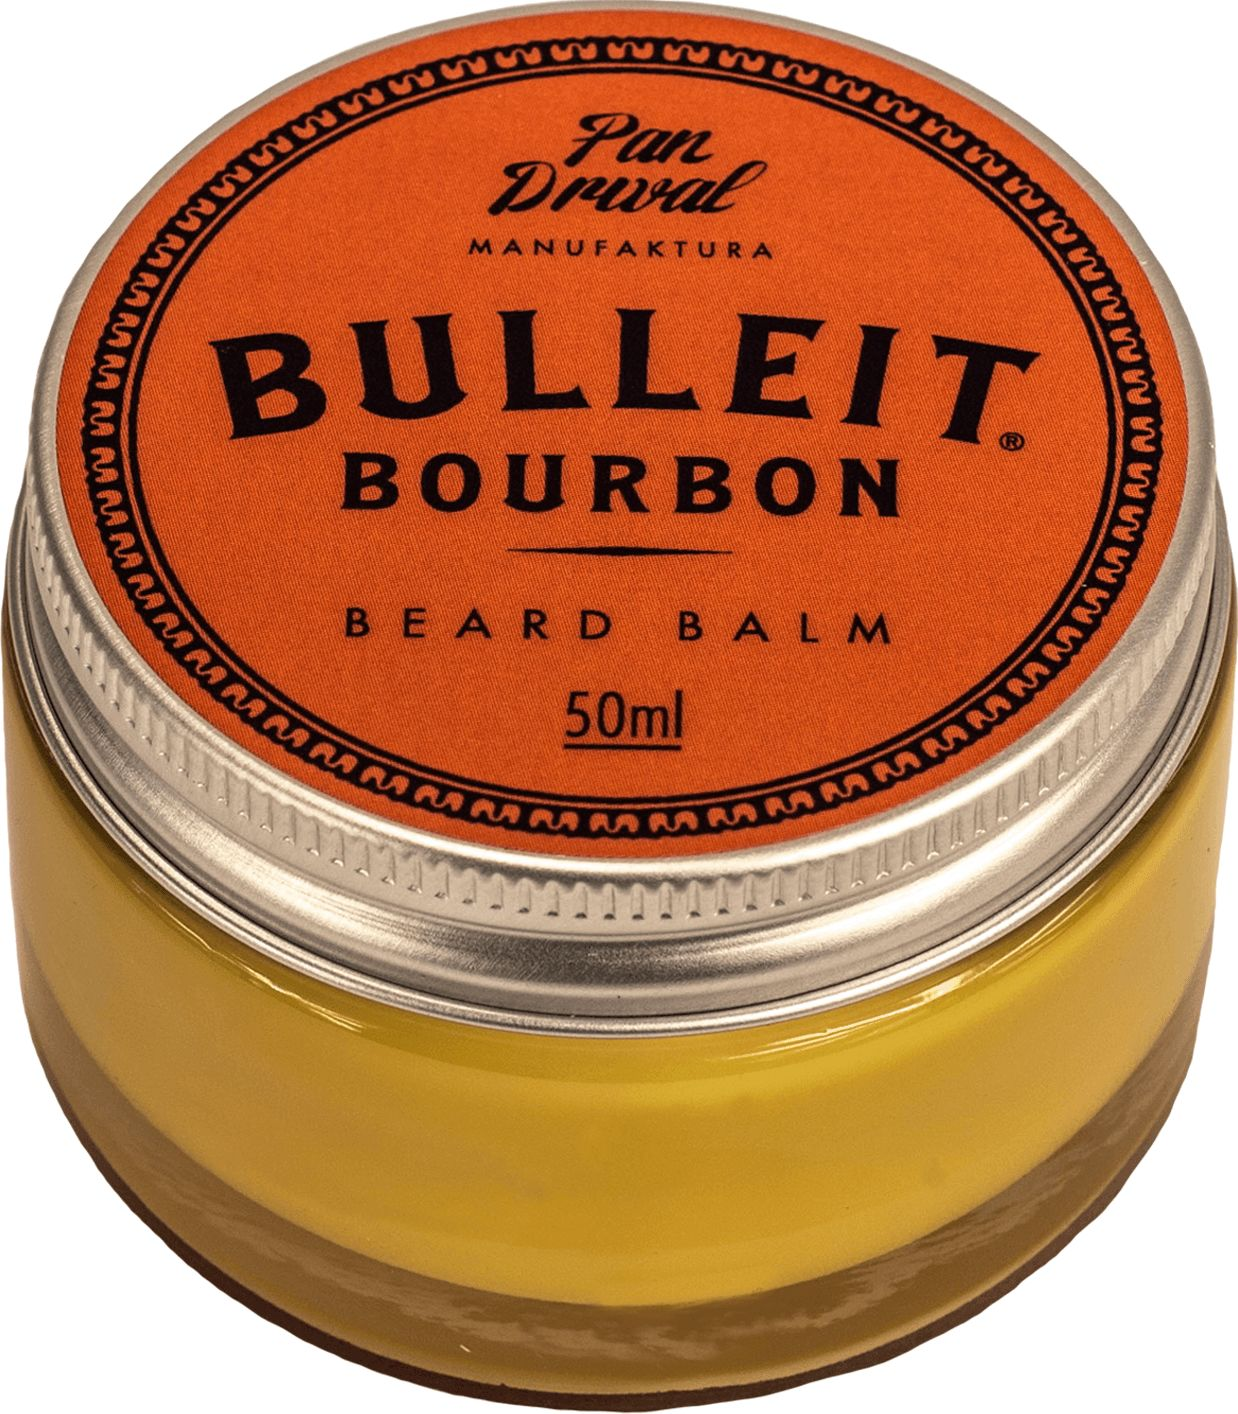 Pan Drwal Bulleit balsam do brody oparty na naturalnych woskach 50ml